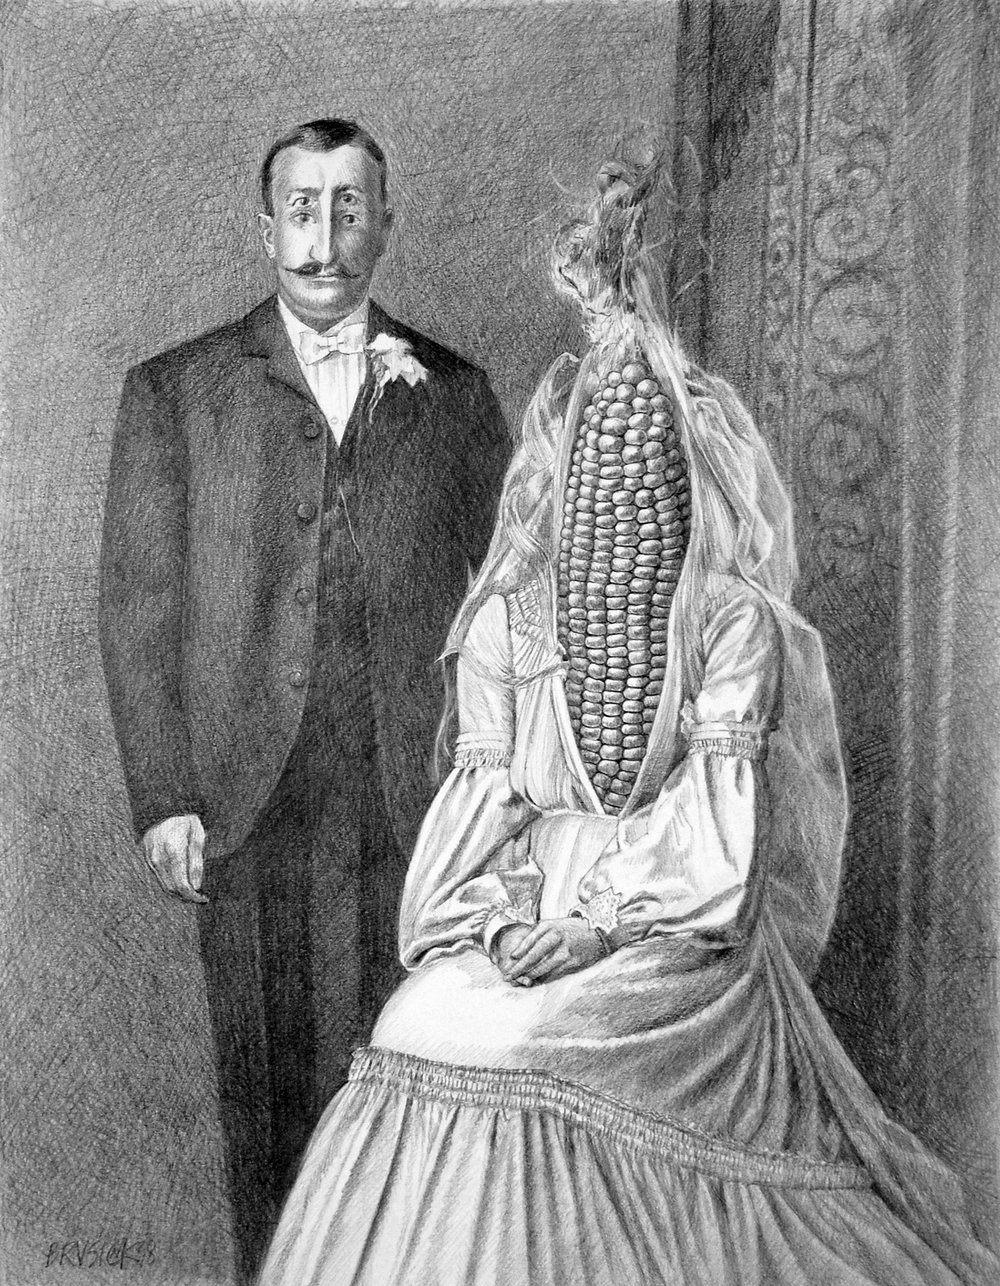 August Wedding, 2011, Pencil on Bristol Paper,13.5 x 10.5 inches